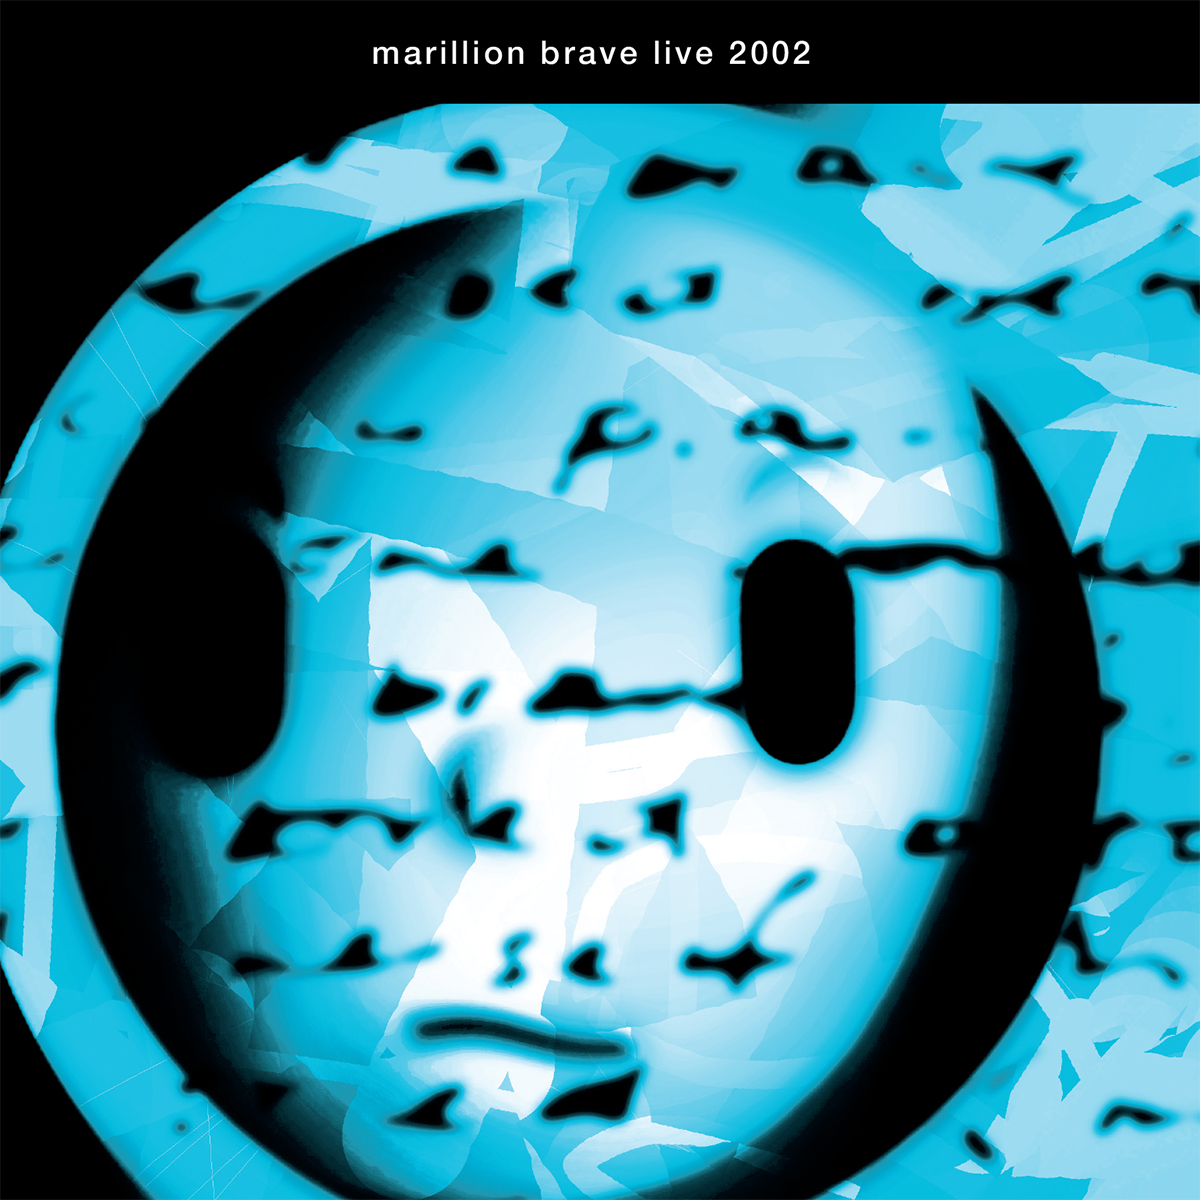 BRAVE LIVE 2002 256 KBPS ALBUM DOWNLOAD